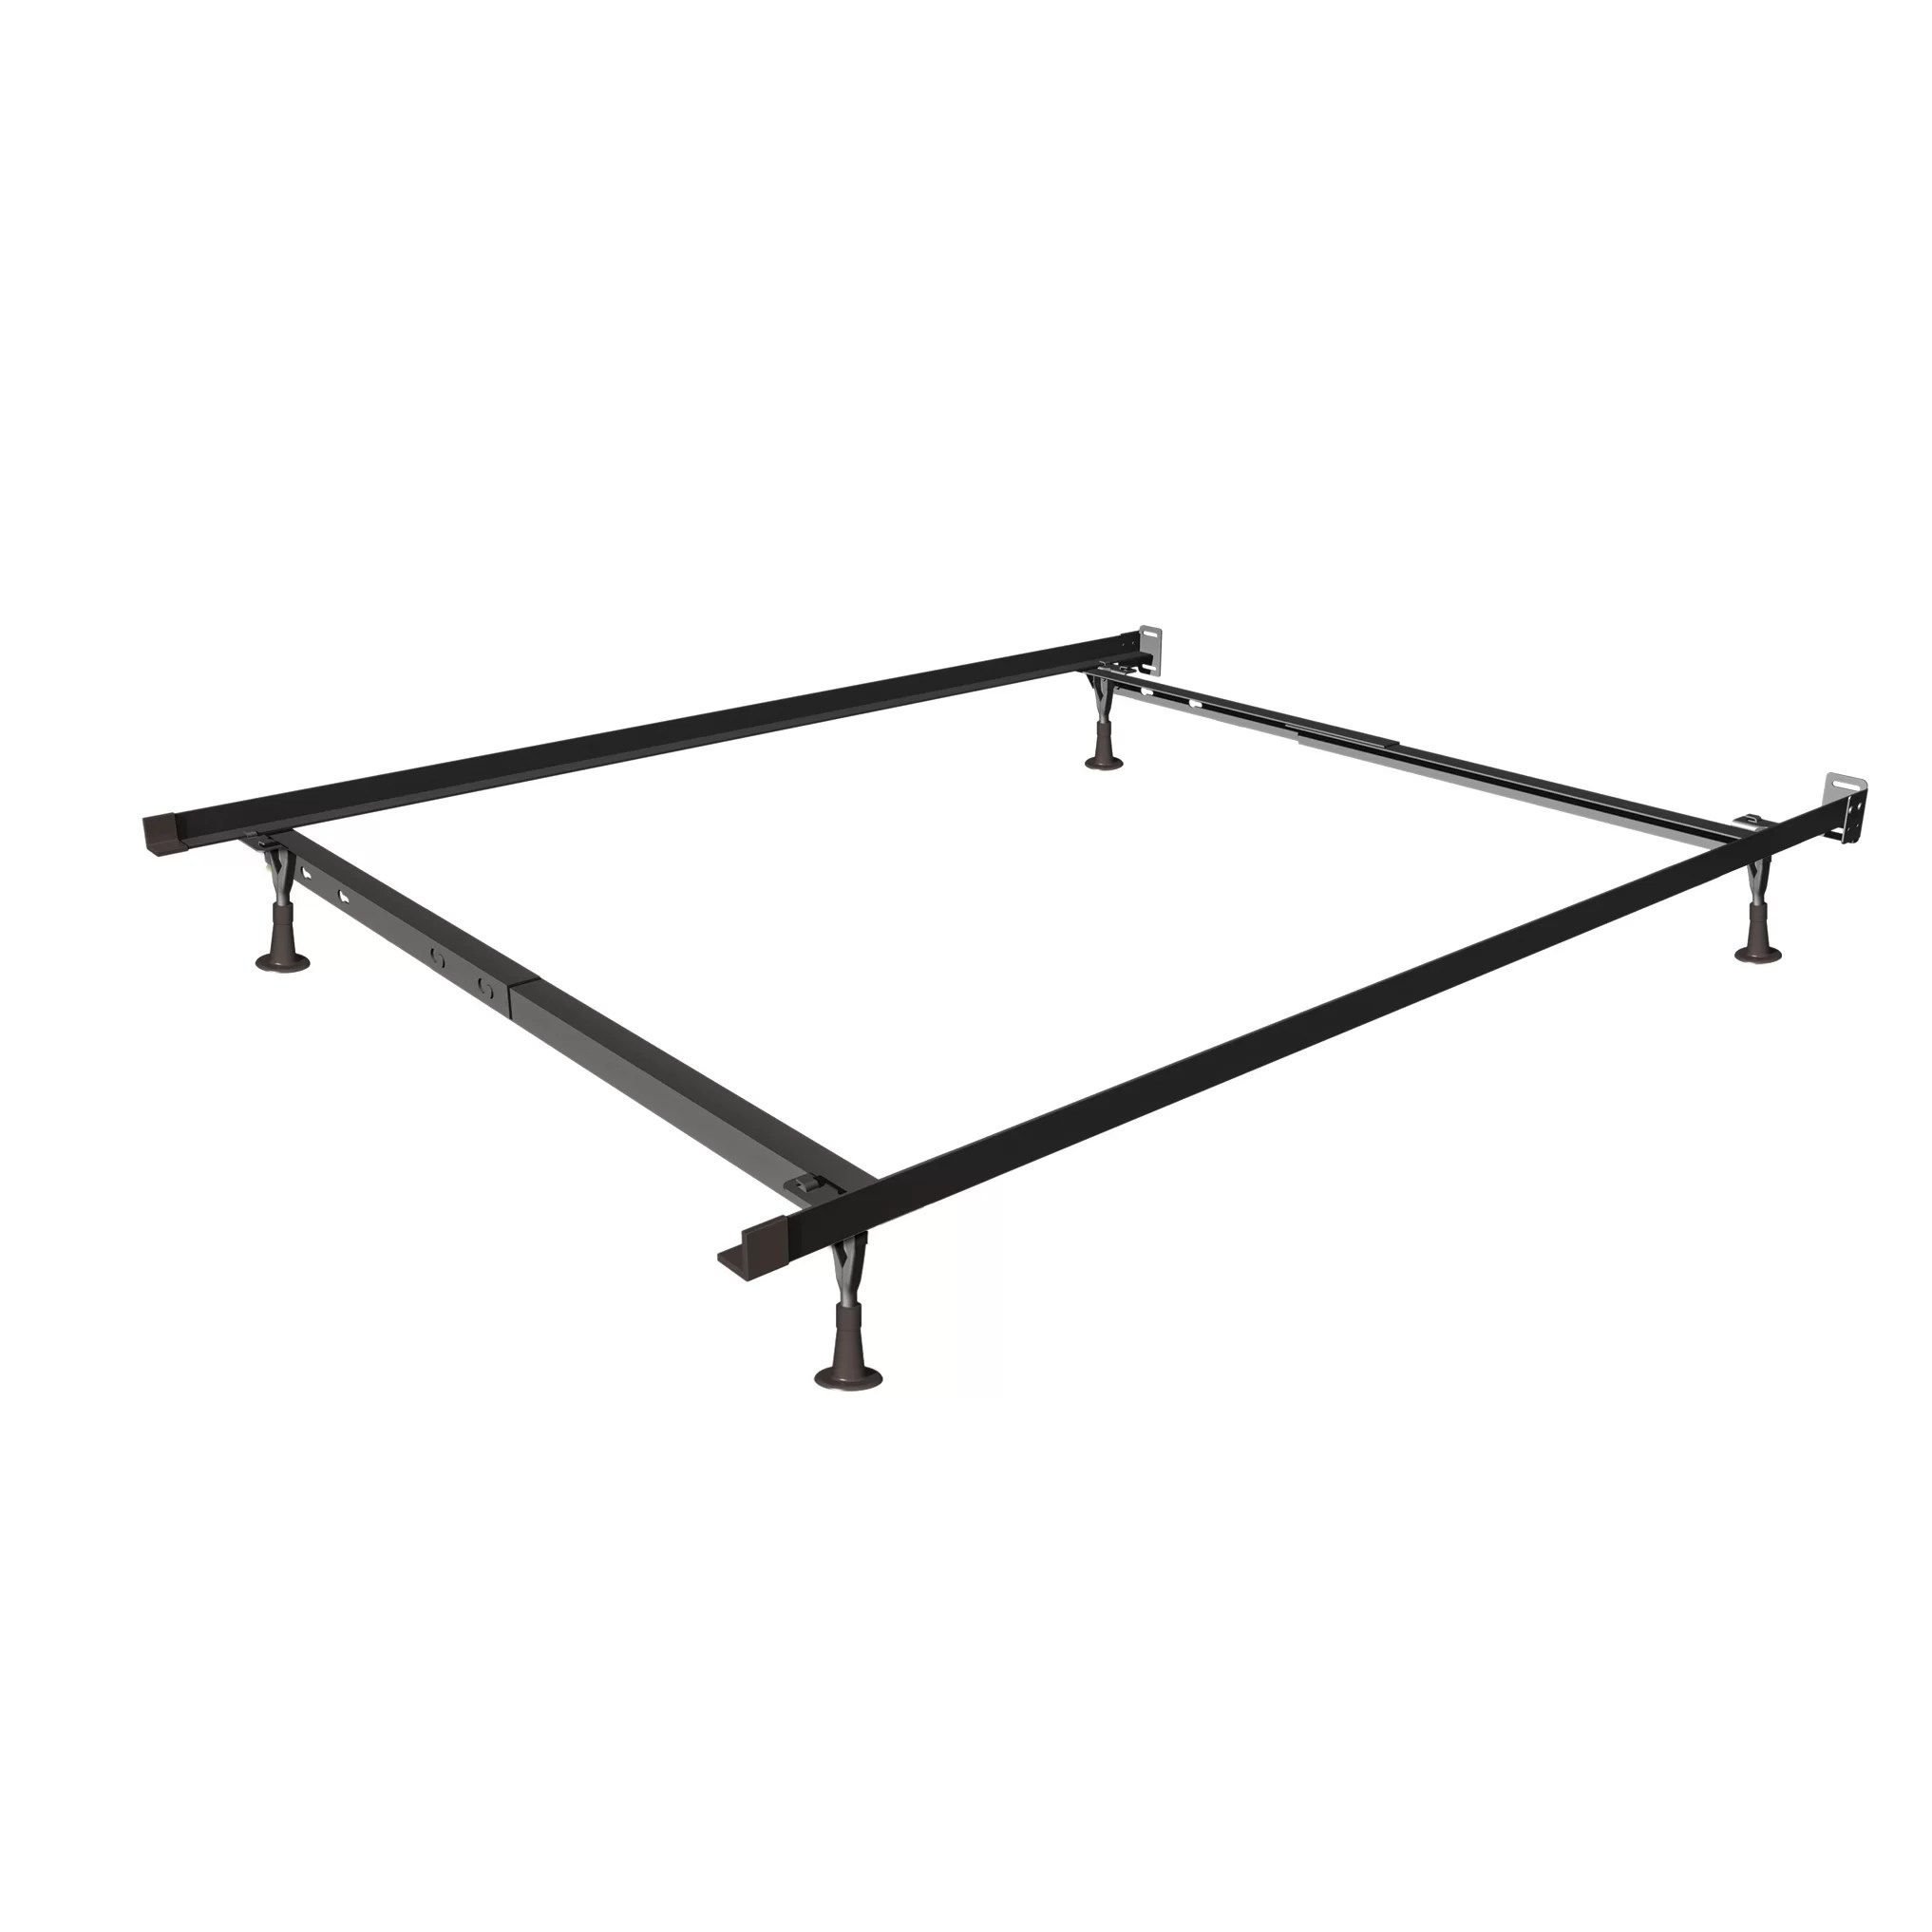 Mantua Mfg Co Insta Lock Twin Full Queen Bed Frame With